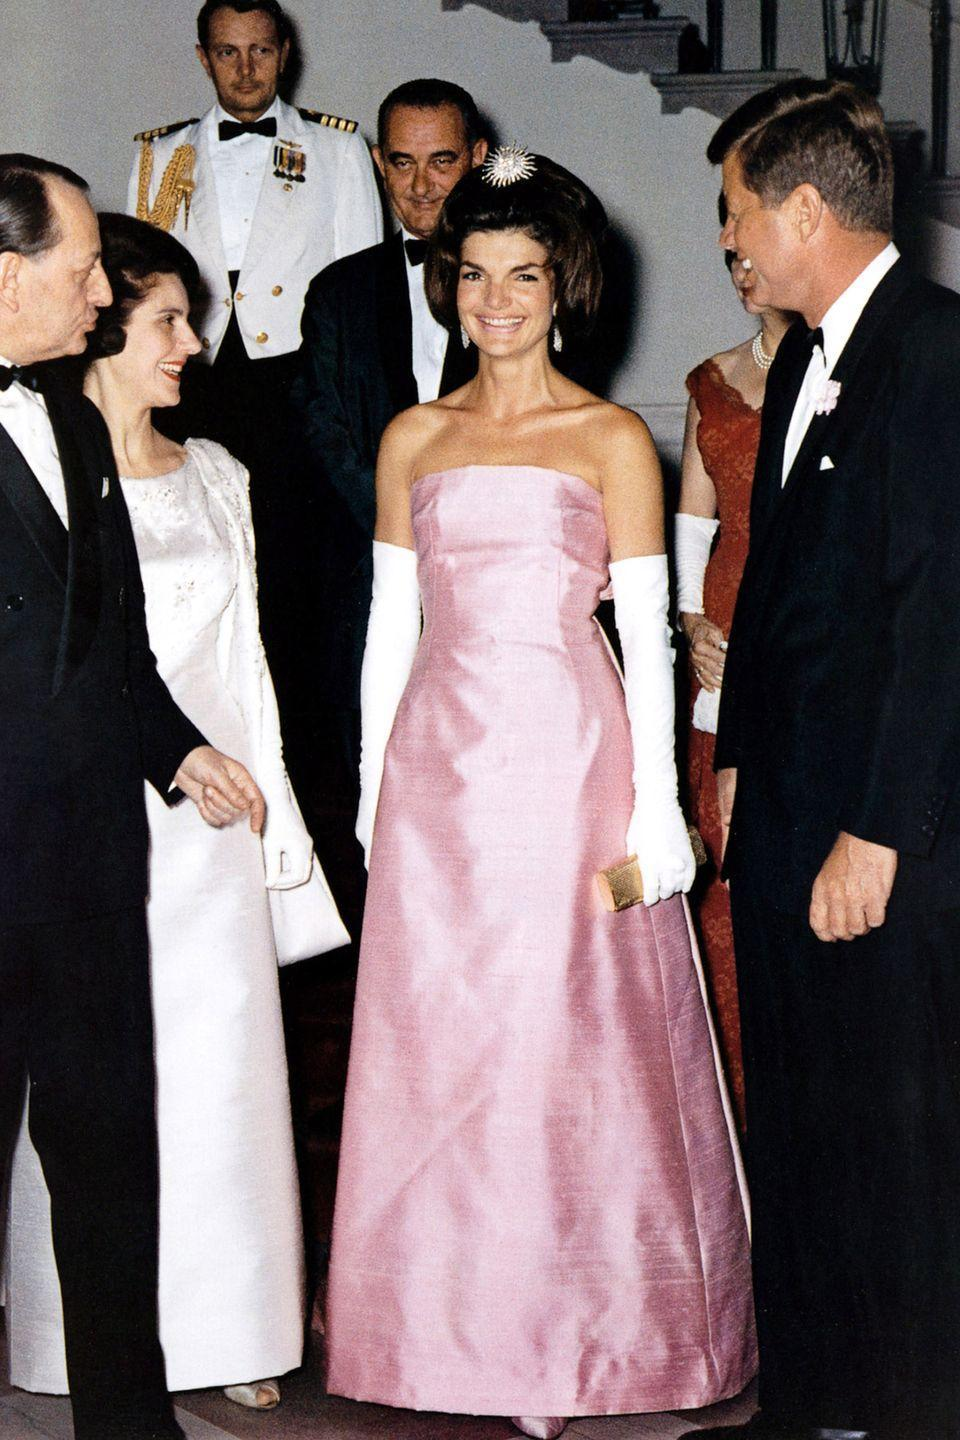 <p>Does it get any prettier than pink Christian Dior? The First Lady attended an event at the White House in this memorable strapless gown.</p>